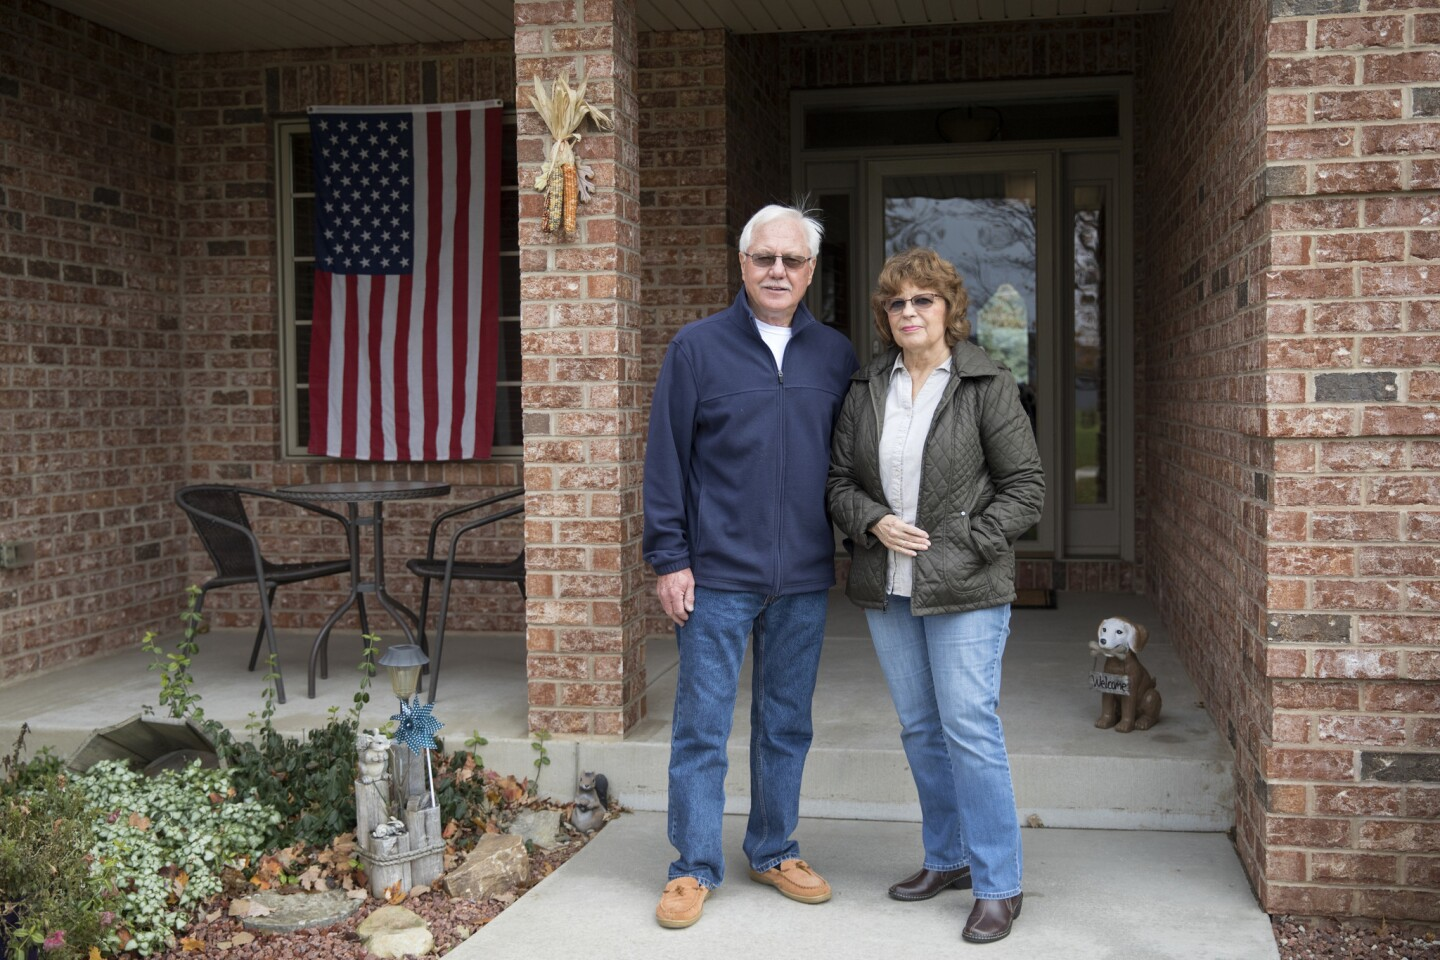 Roger and Dianne Klinkhammer, both 73, stand together outside their custom-built home where they have lived for 10 years in a tiny subdivision Nov. 13, 2017, in Mount Pleasant, Wis. Foxconn's new 20 million-square-foot manufacturing plant is to be built on land in Mount Pleasant that includes the couple's property and they are being forced to relocate.